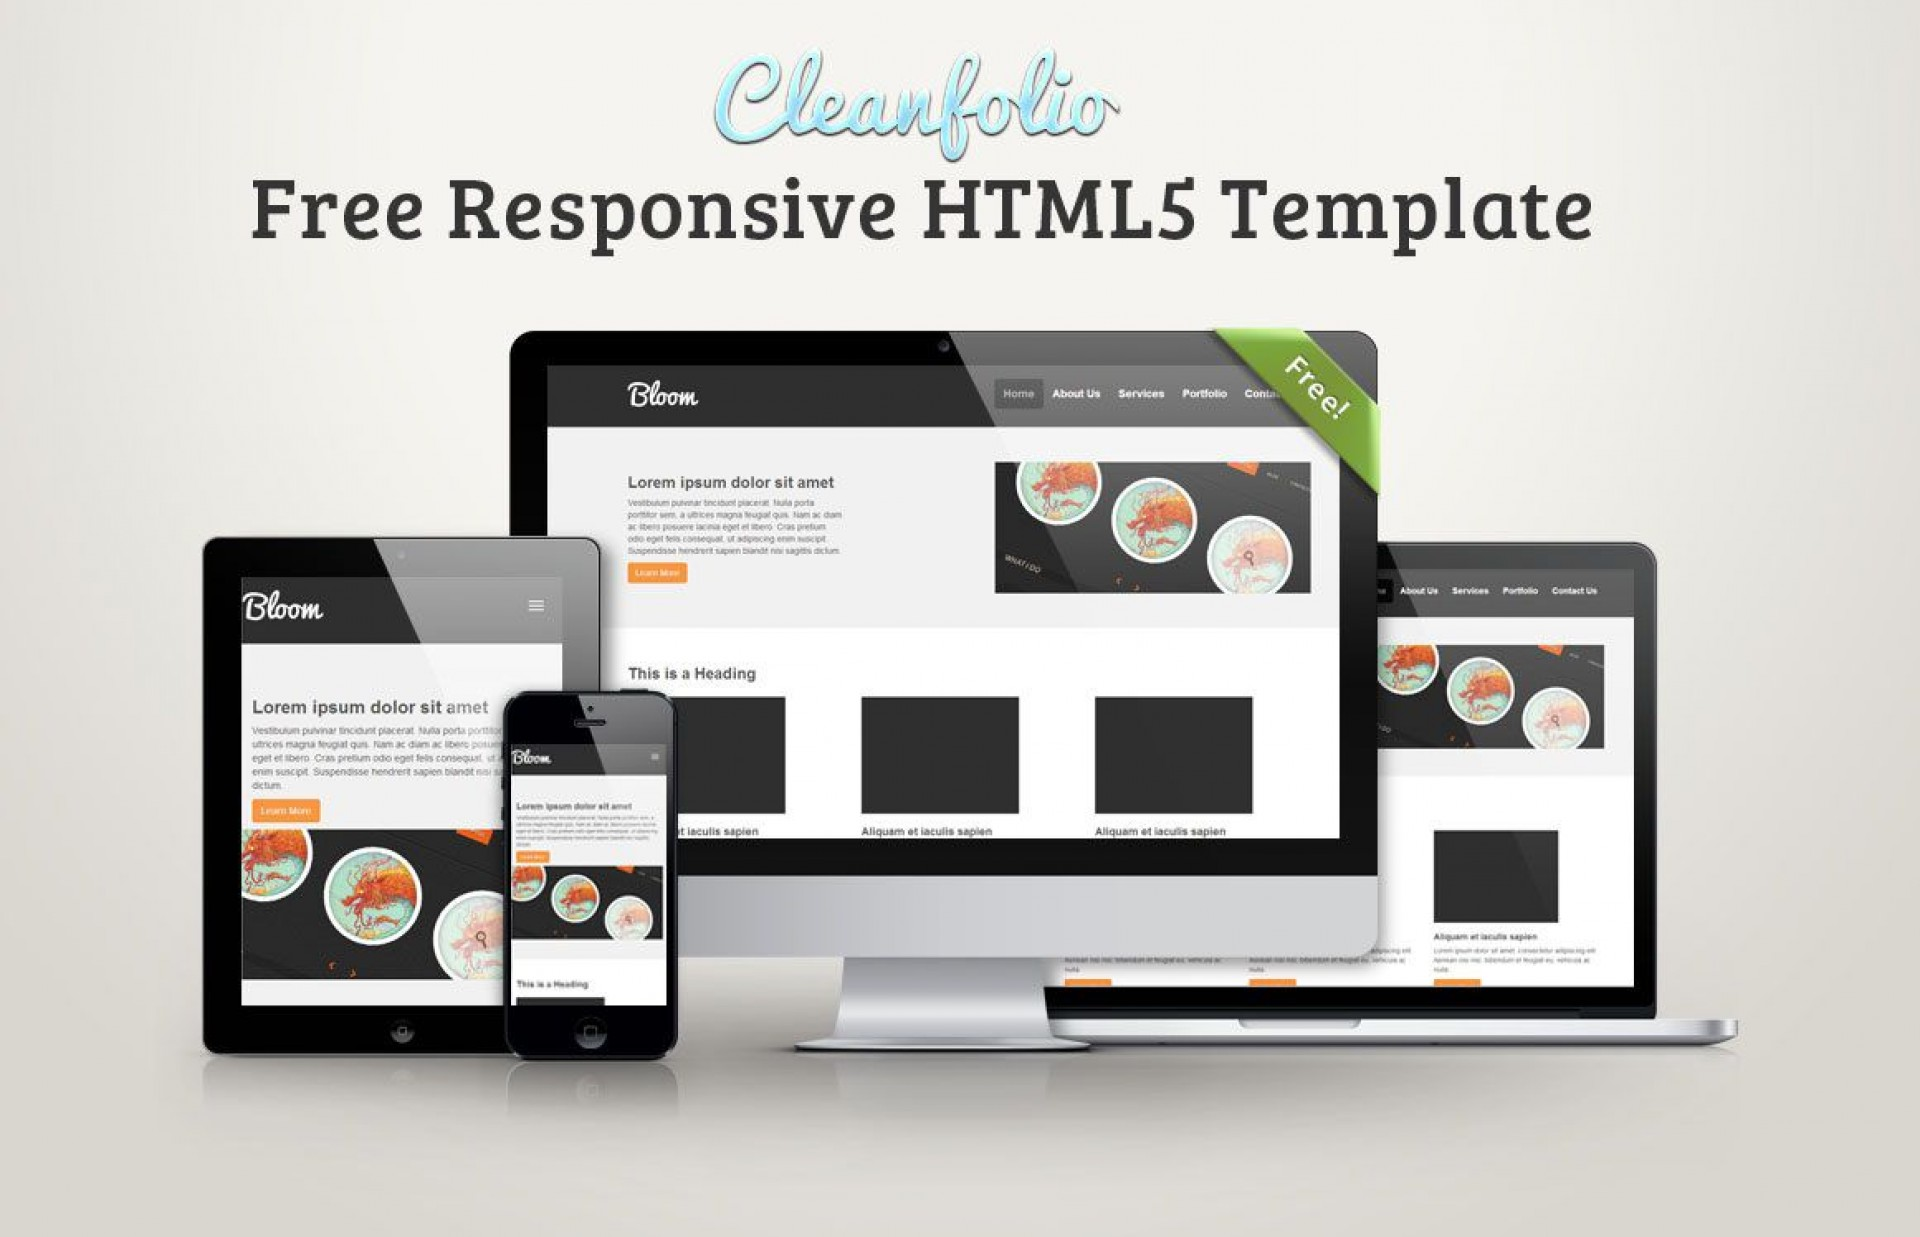 001 Excellent Free Responsive Html5 Template Sample  Download For School Bootstrap Website1920